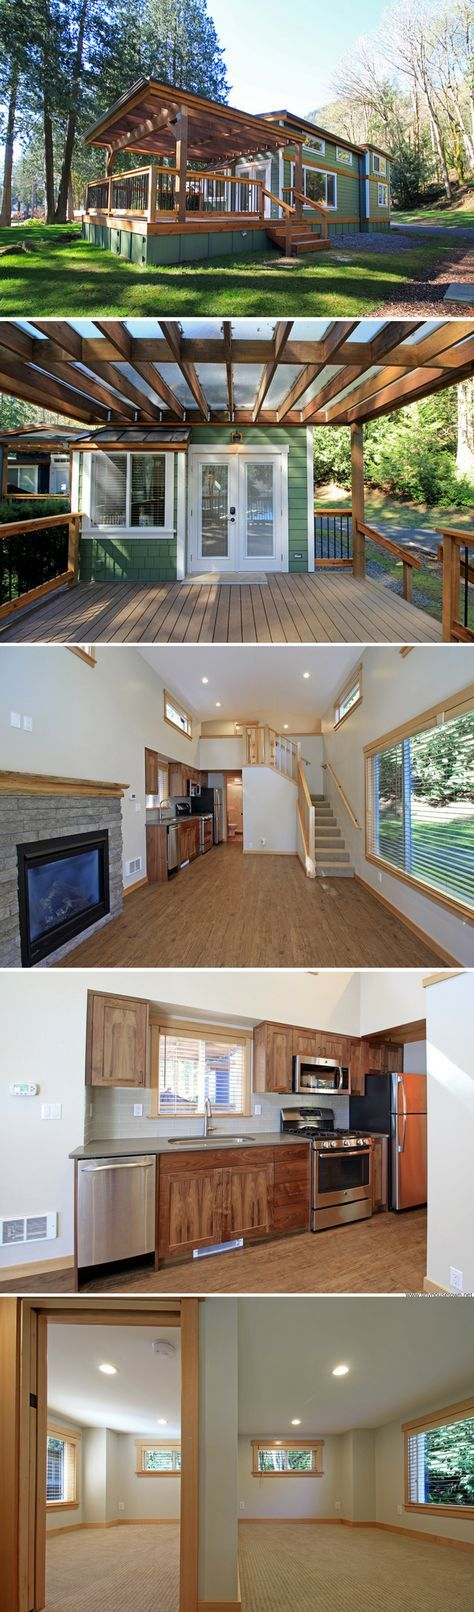 The whidbey a luxury 400 sq ft park model home tiny for Whidbey tiny house